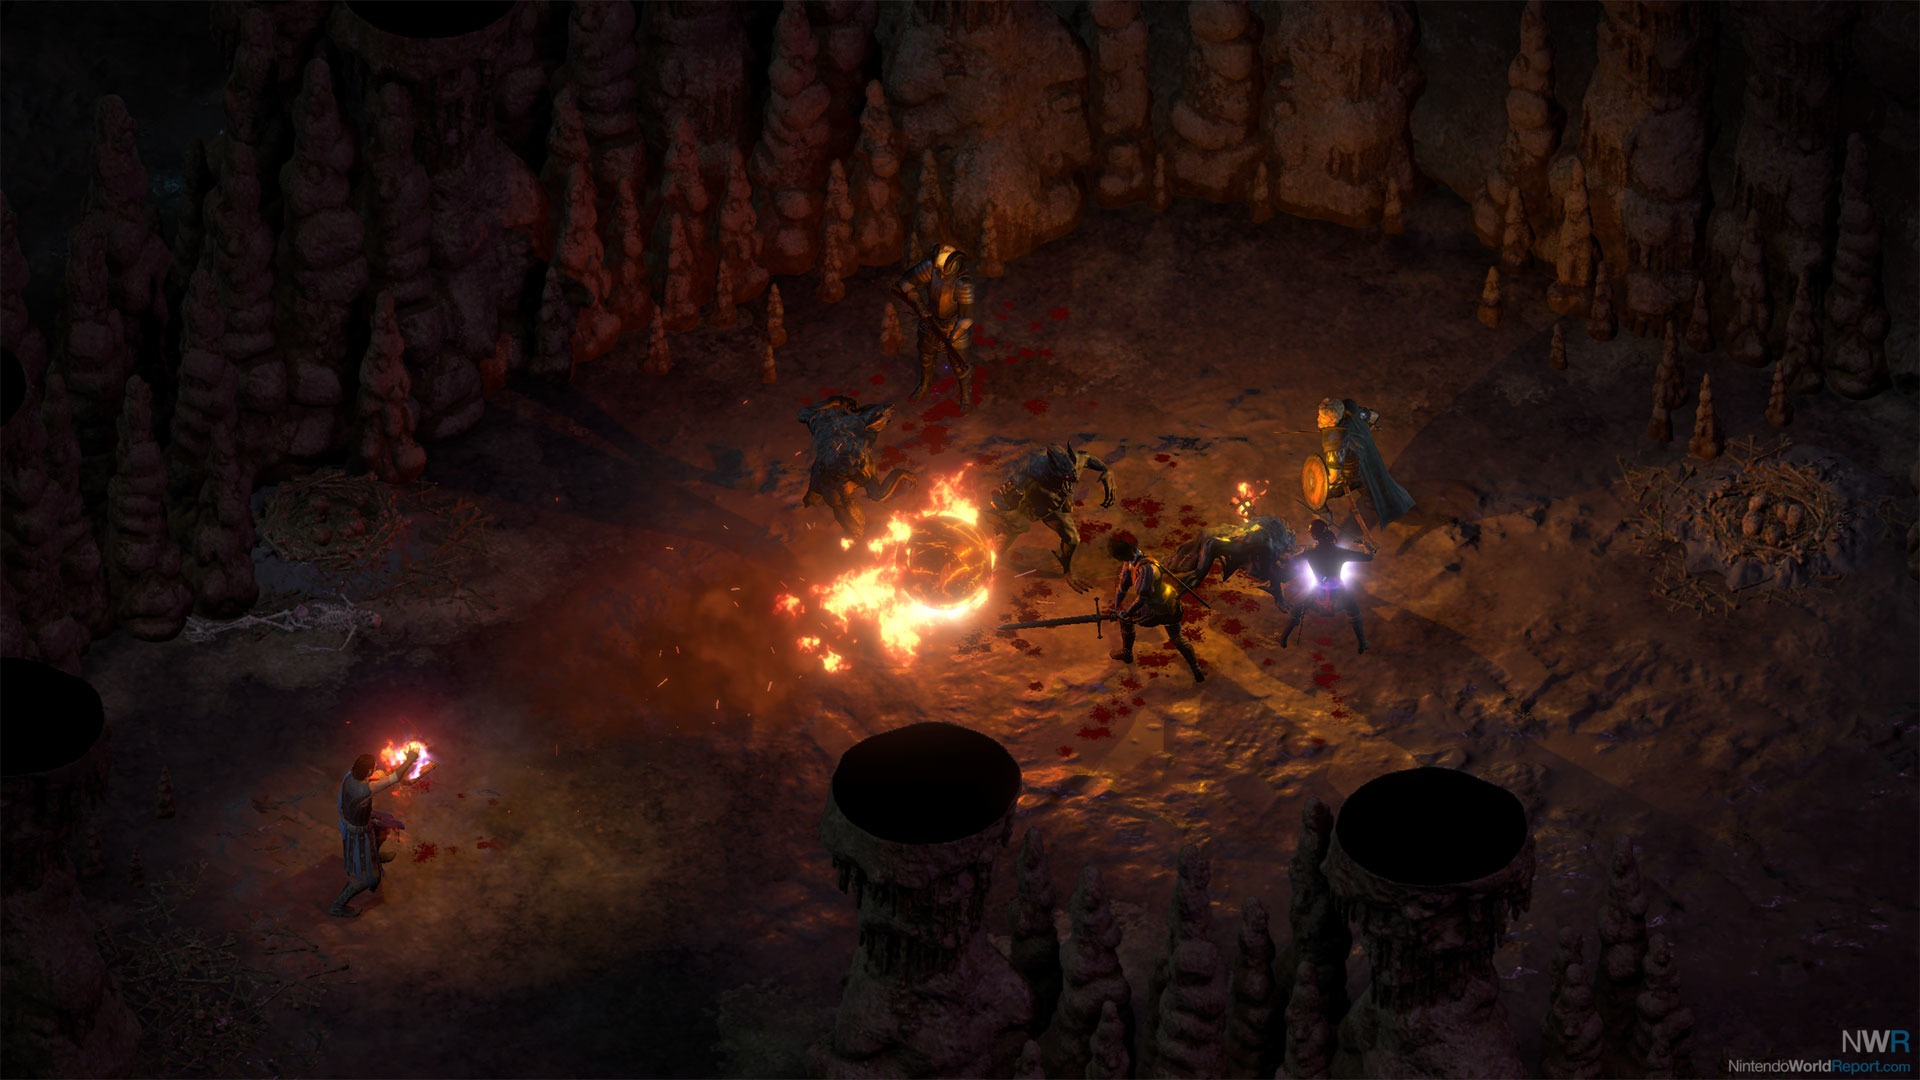 Pillars of Eternity II is coming to consoles later this year